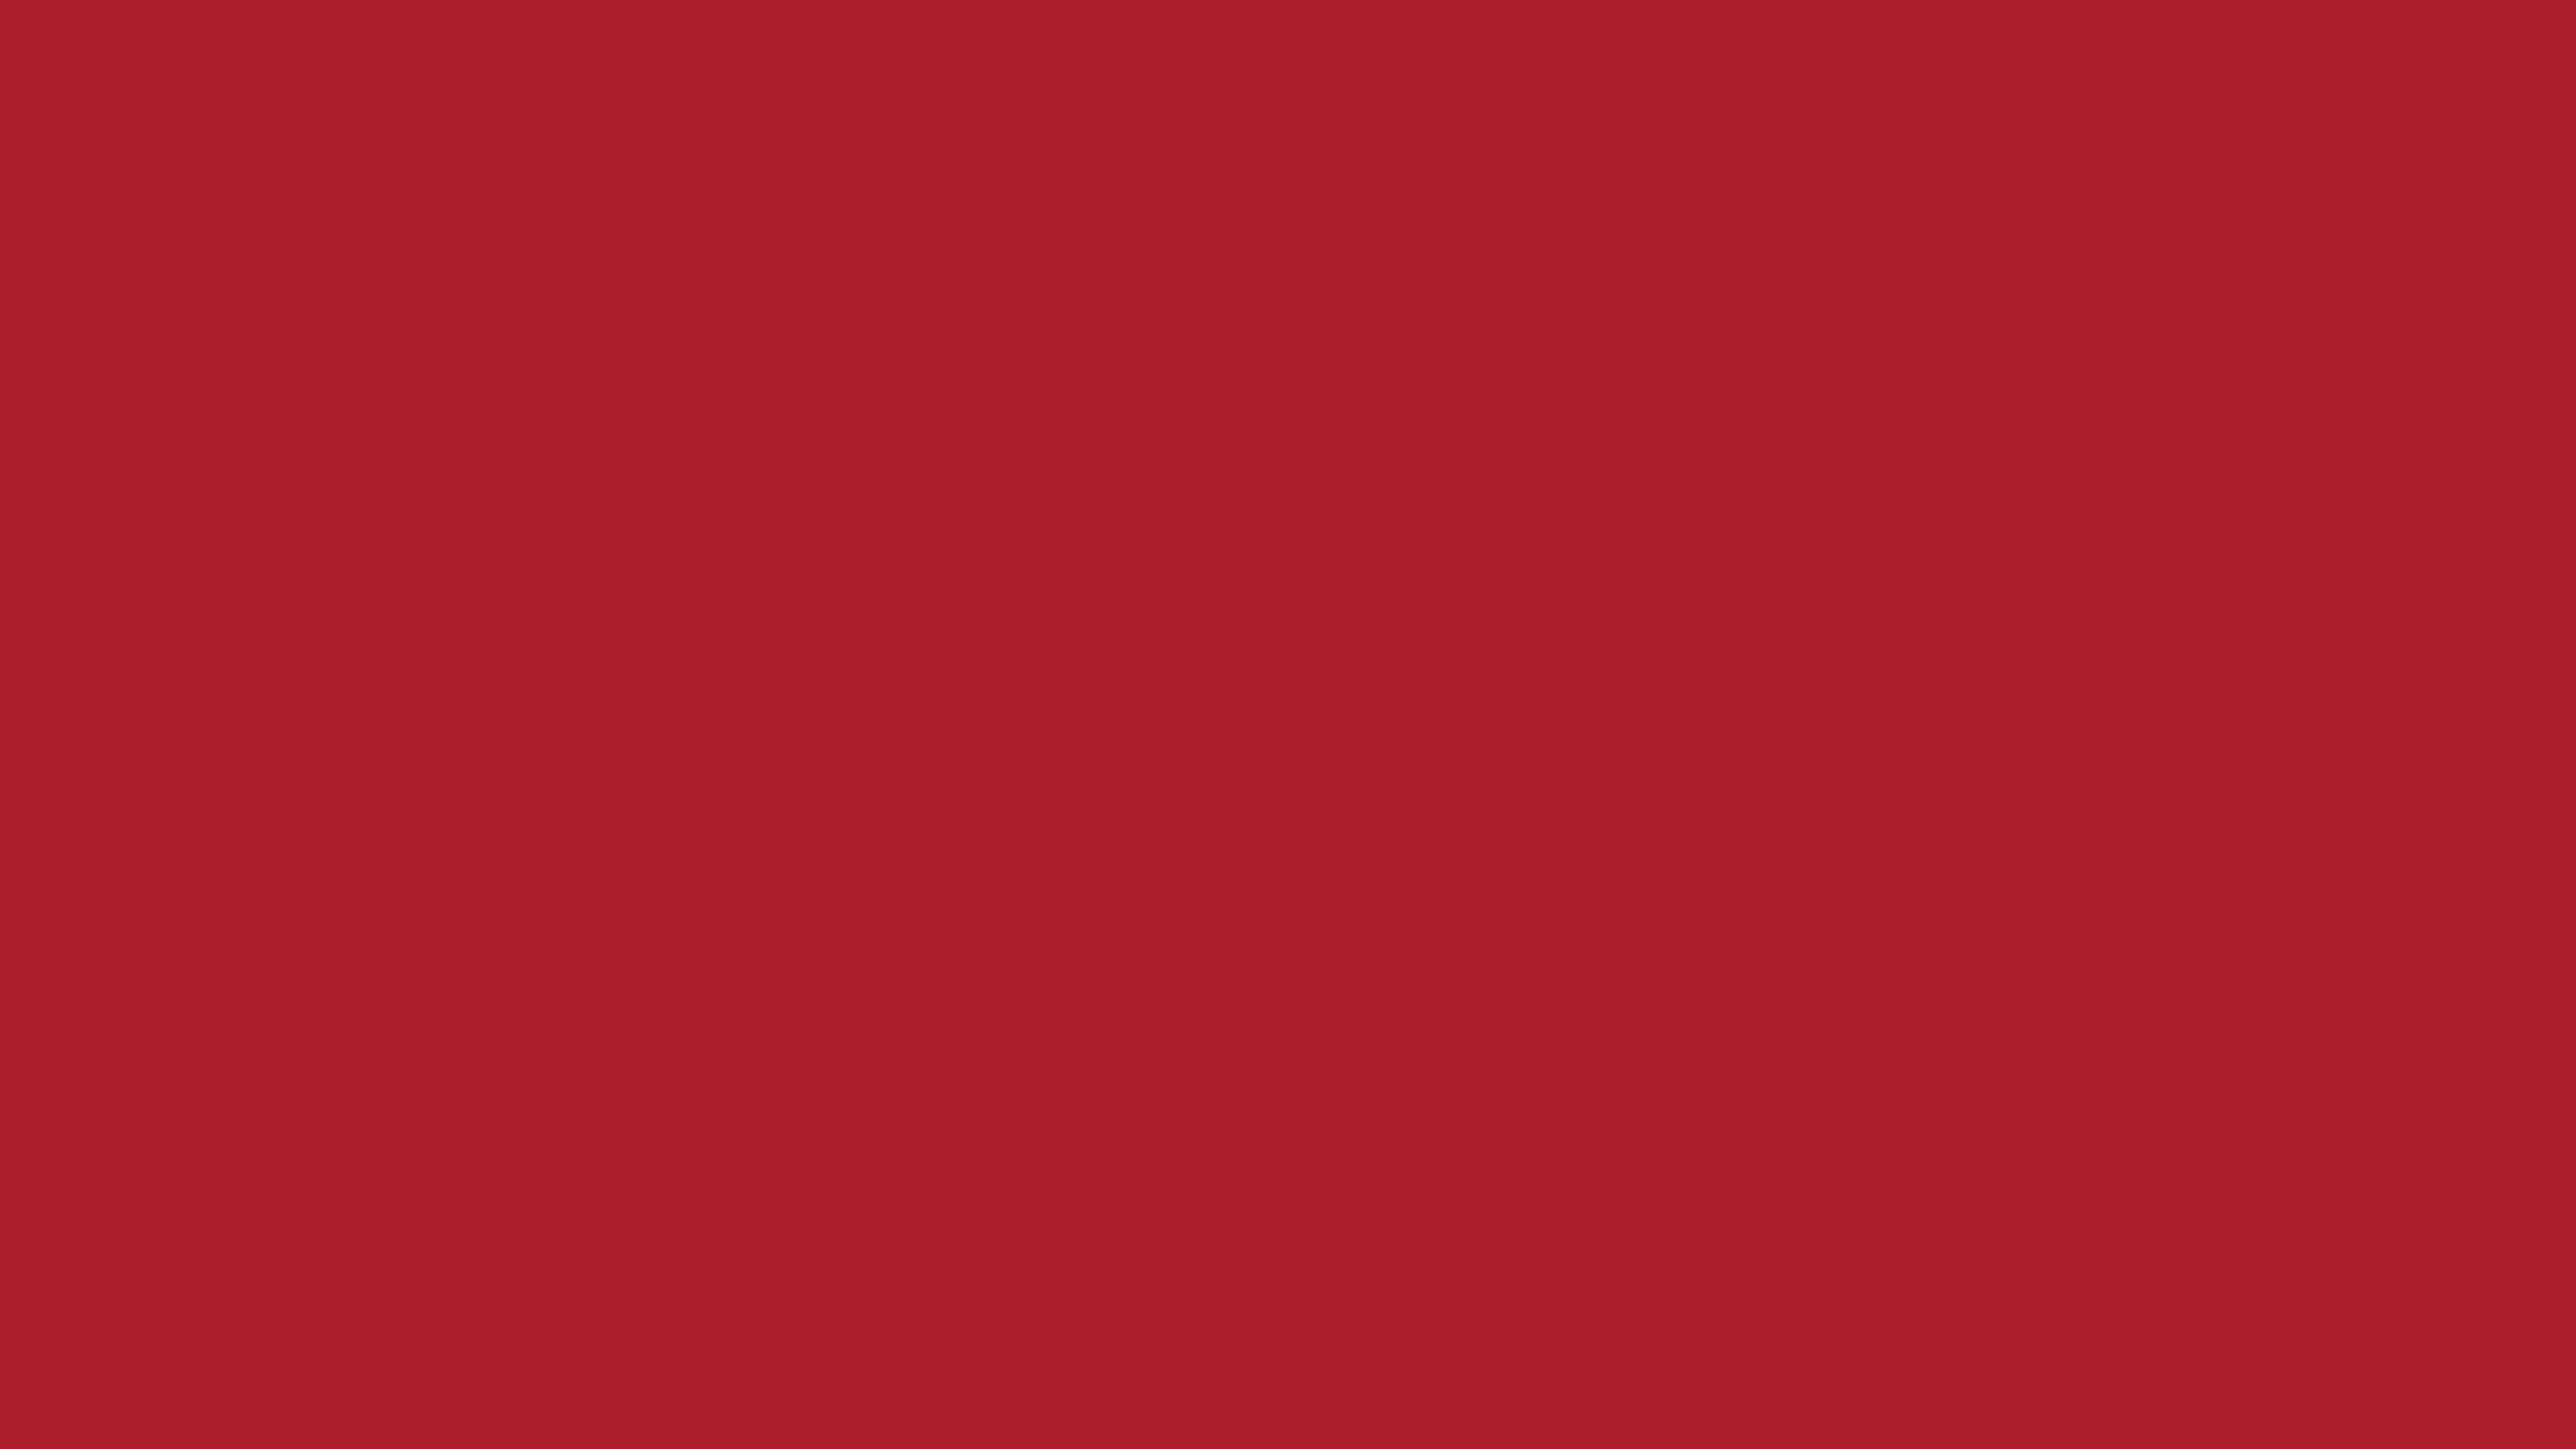 7680x4320 Upsdell Red Solid Color Background